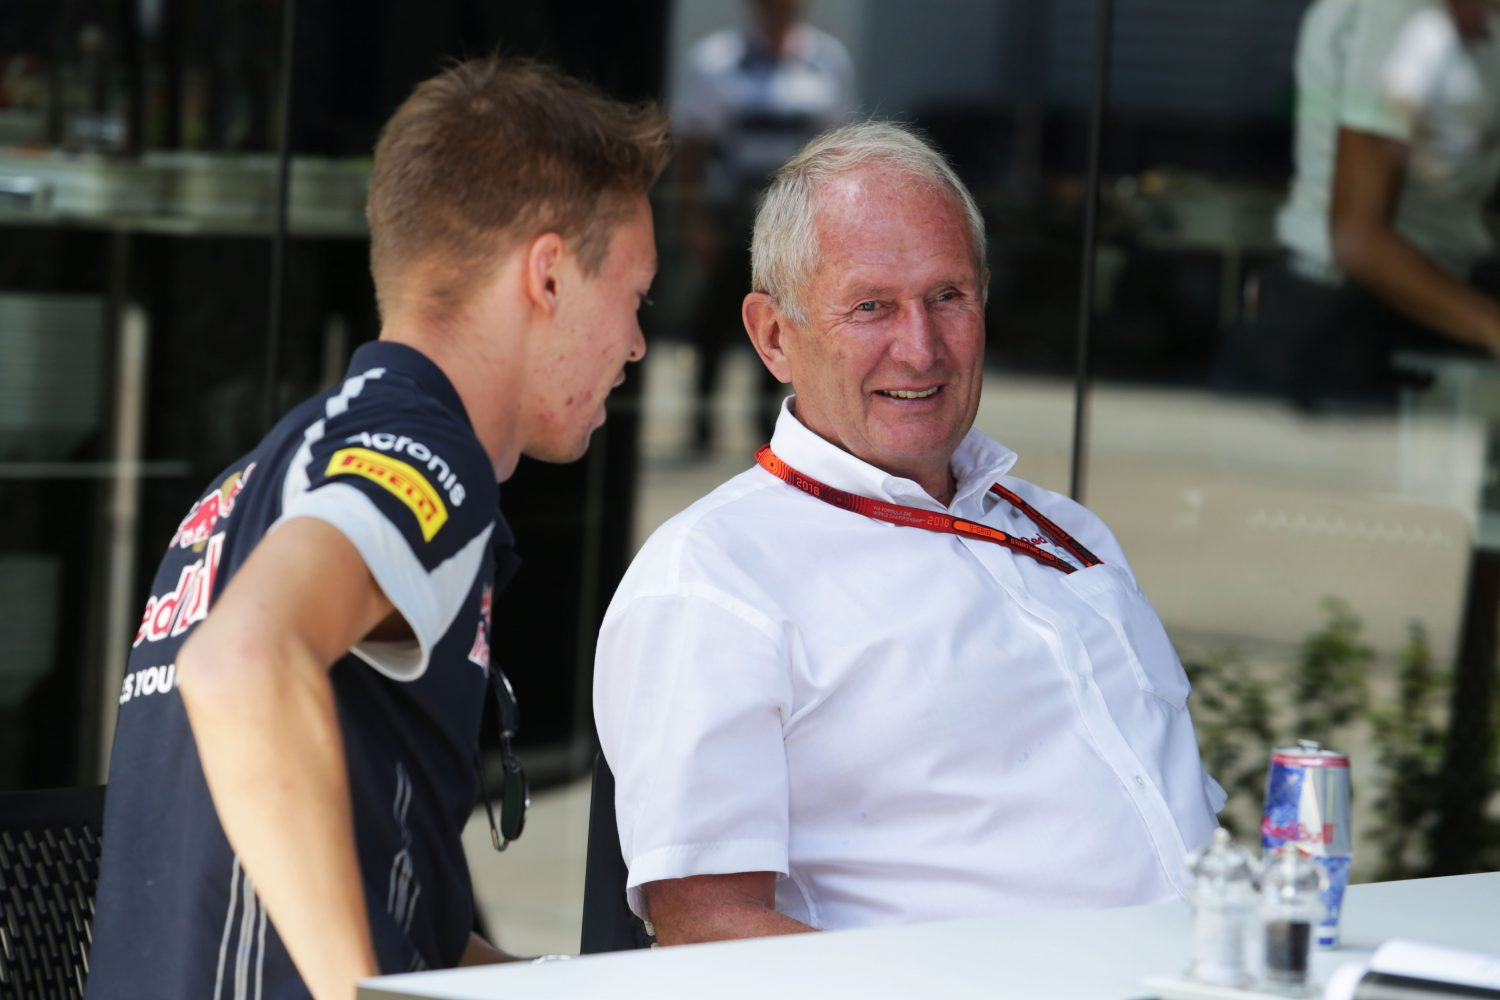 Formula One World Championship 2016, Round 16, Malaysian Grand Prix, Kuala Lumpur, Malaysia, Sunday 2 October 2016 - L to R): Daniil Kvyat (RUS) Scuderia Toro Rosso with Dr Helmut Marko (AUT) Red Bull Motorsport Consultant.